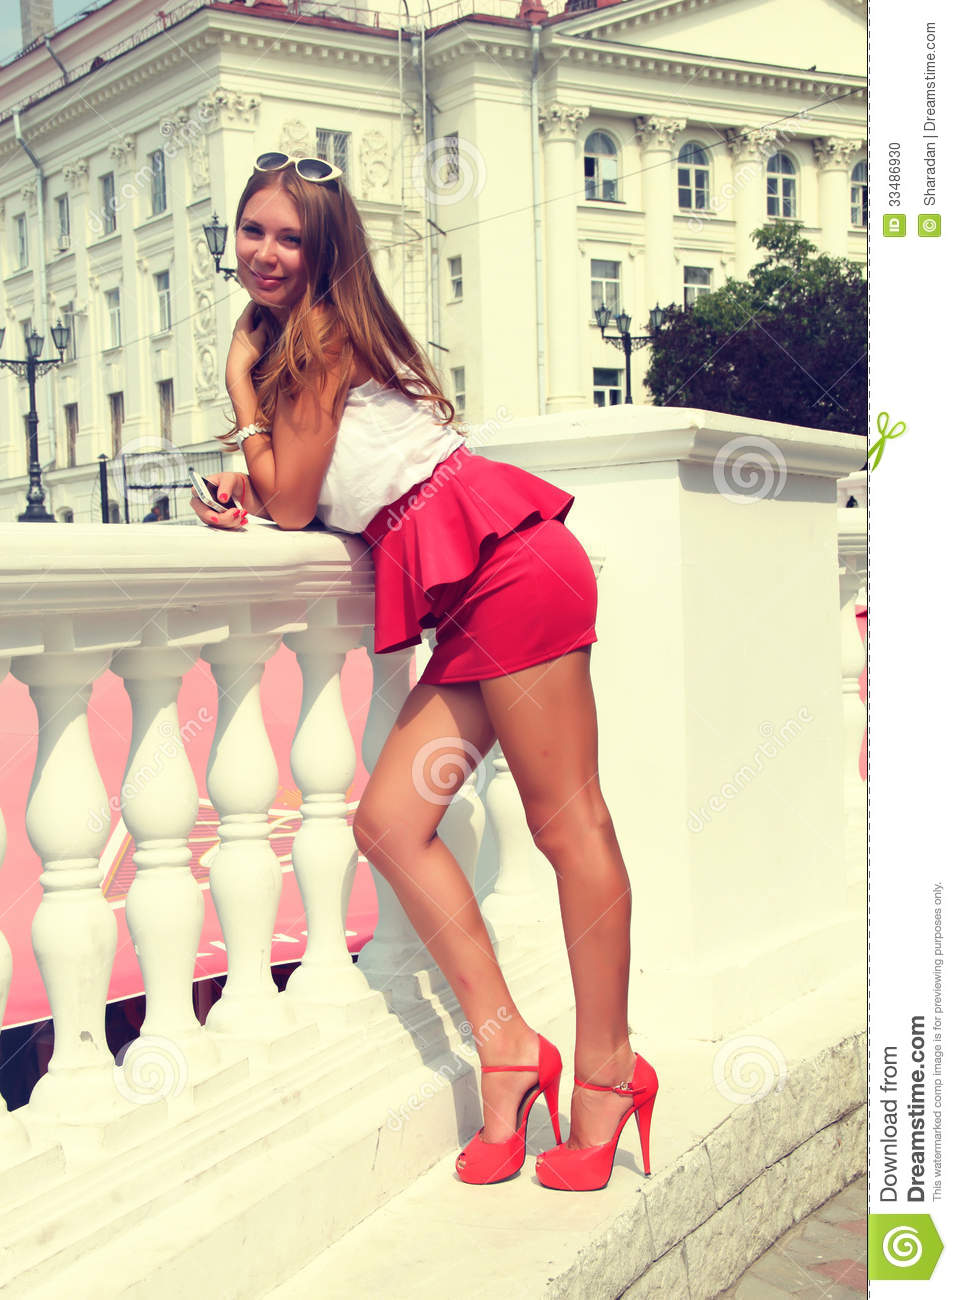 The Girl In The Red Shoes Stock Photo - Image: 33486930